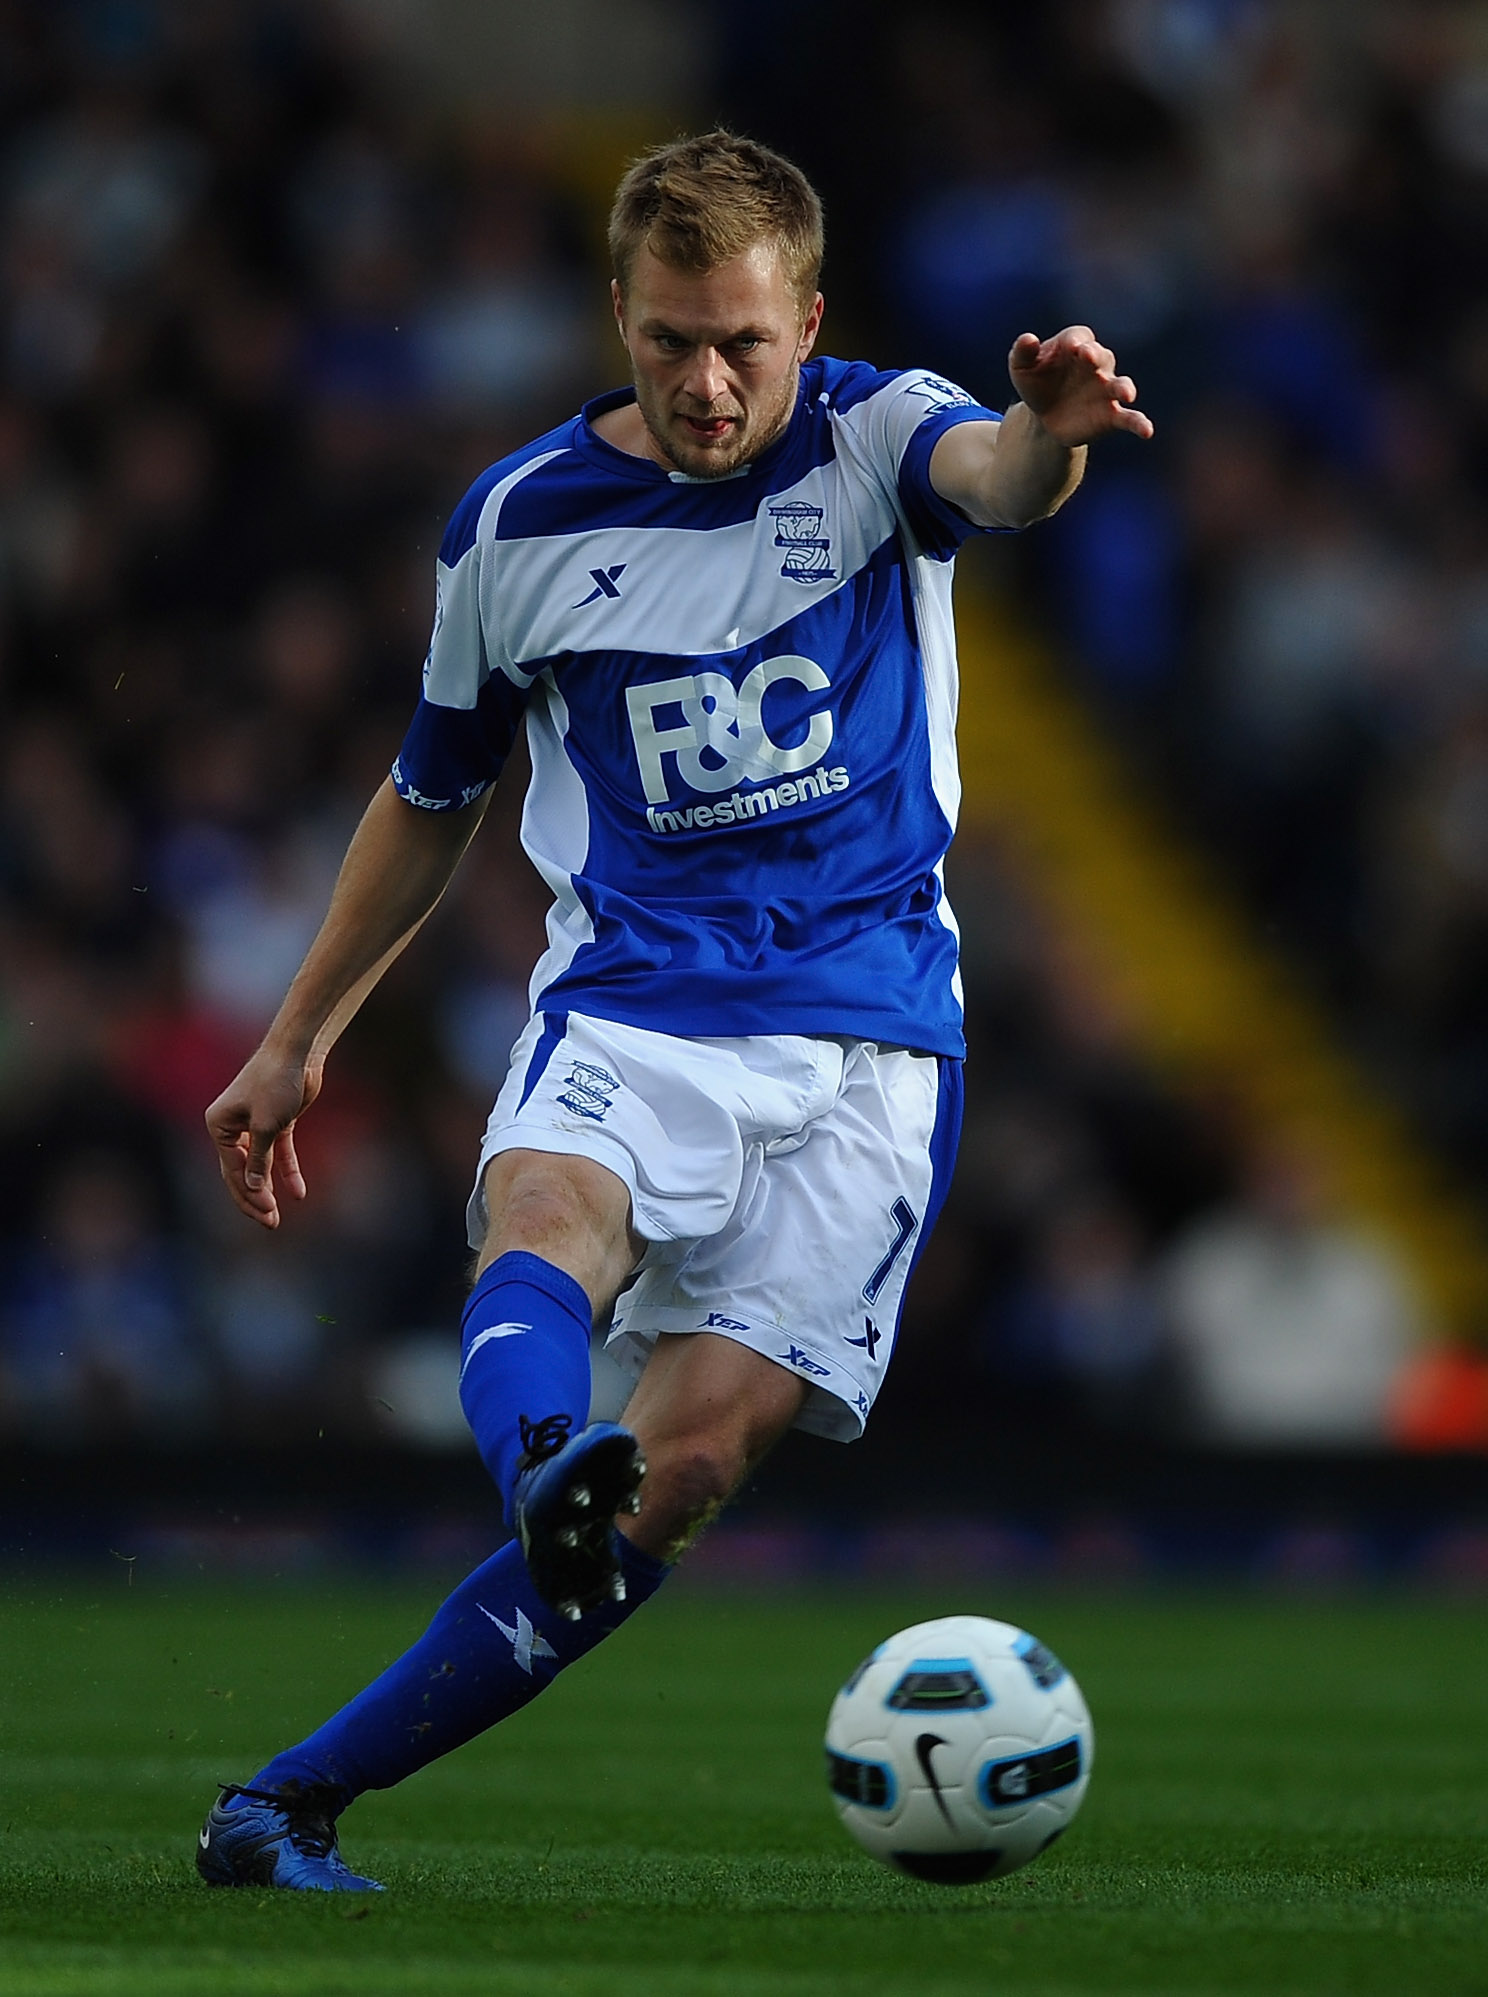 BIRMINGHAM, ENGLAND - OCTOBER 23:  Sebastian Larsson of Birmingham City in action during the Barclays Premier League match between Birmingham City and Blackpool at St Andrews on October 23, 2010 in Birmingham, England.  (Photo by Laurence Griffiths/Getty